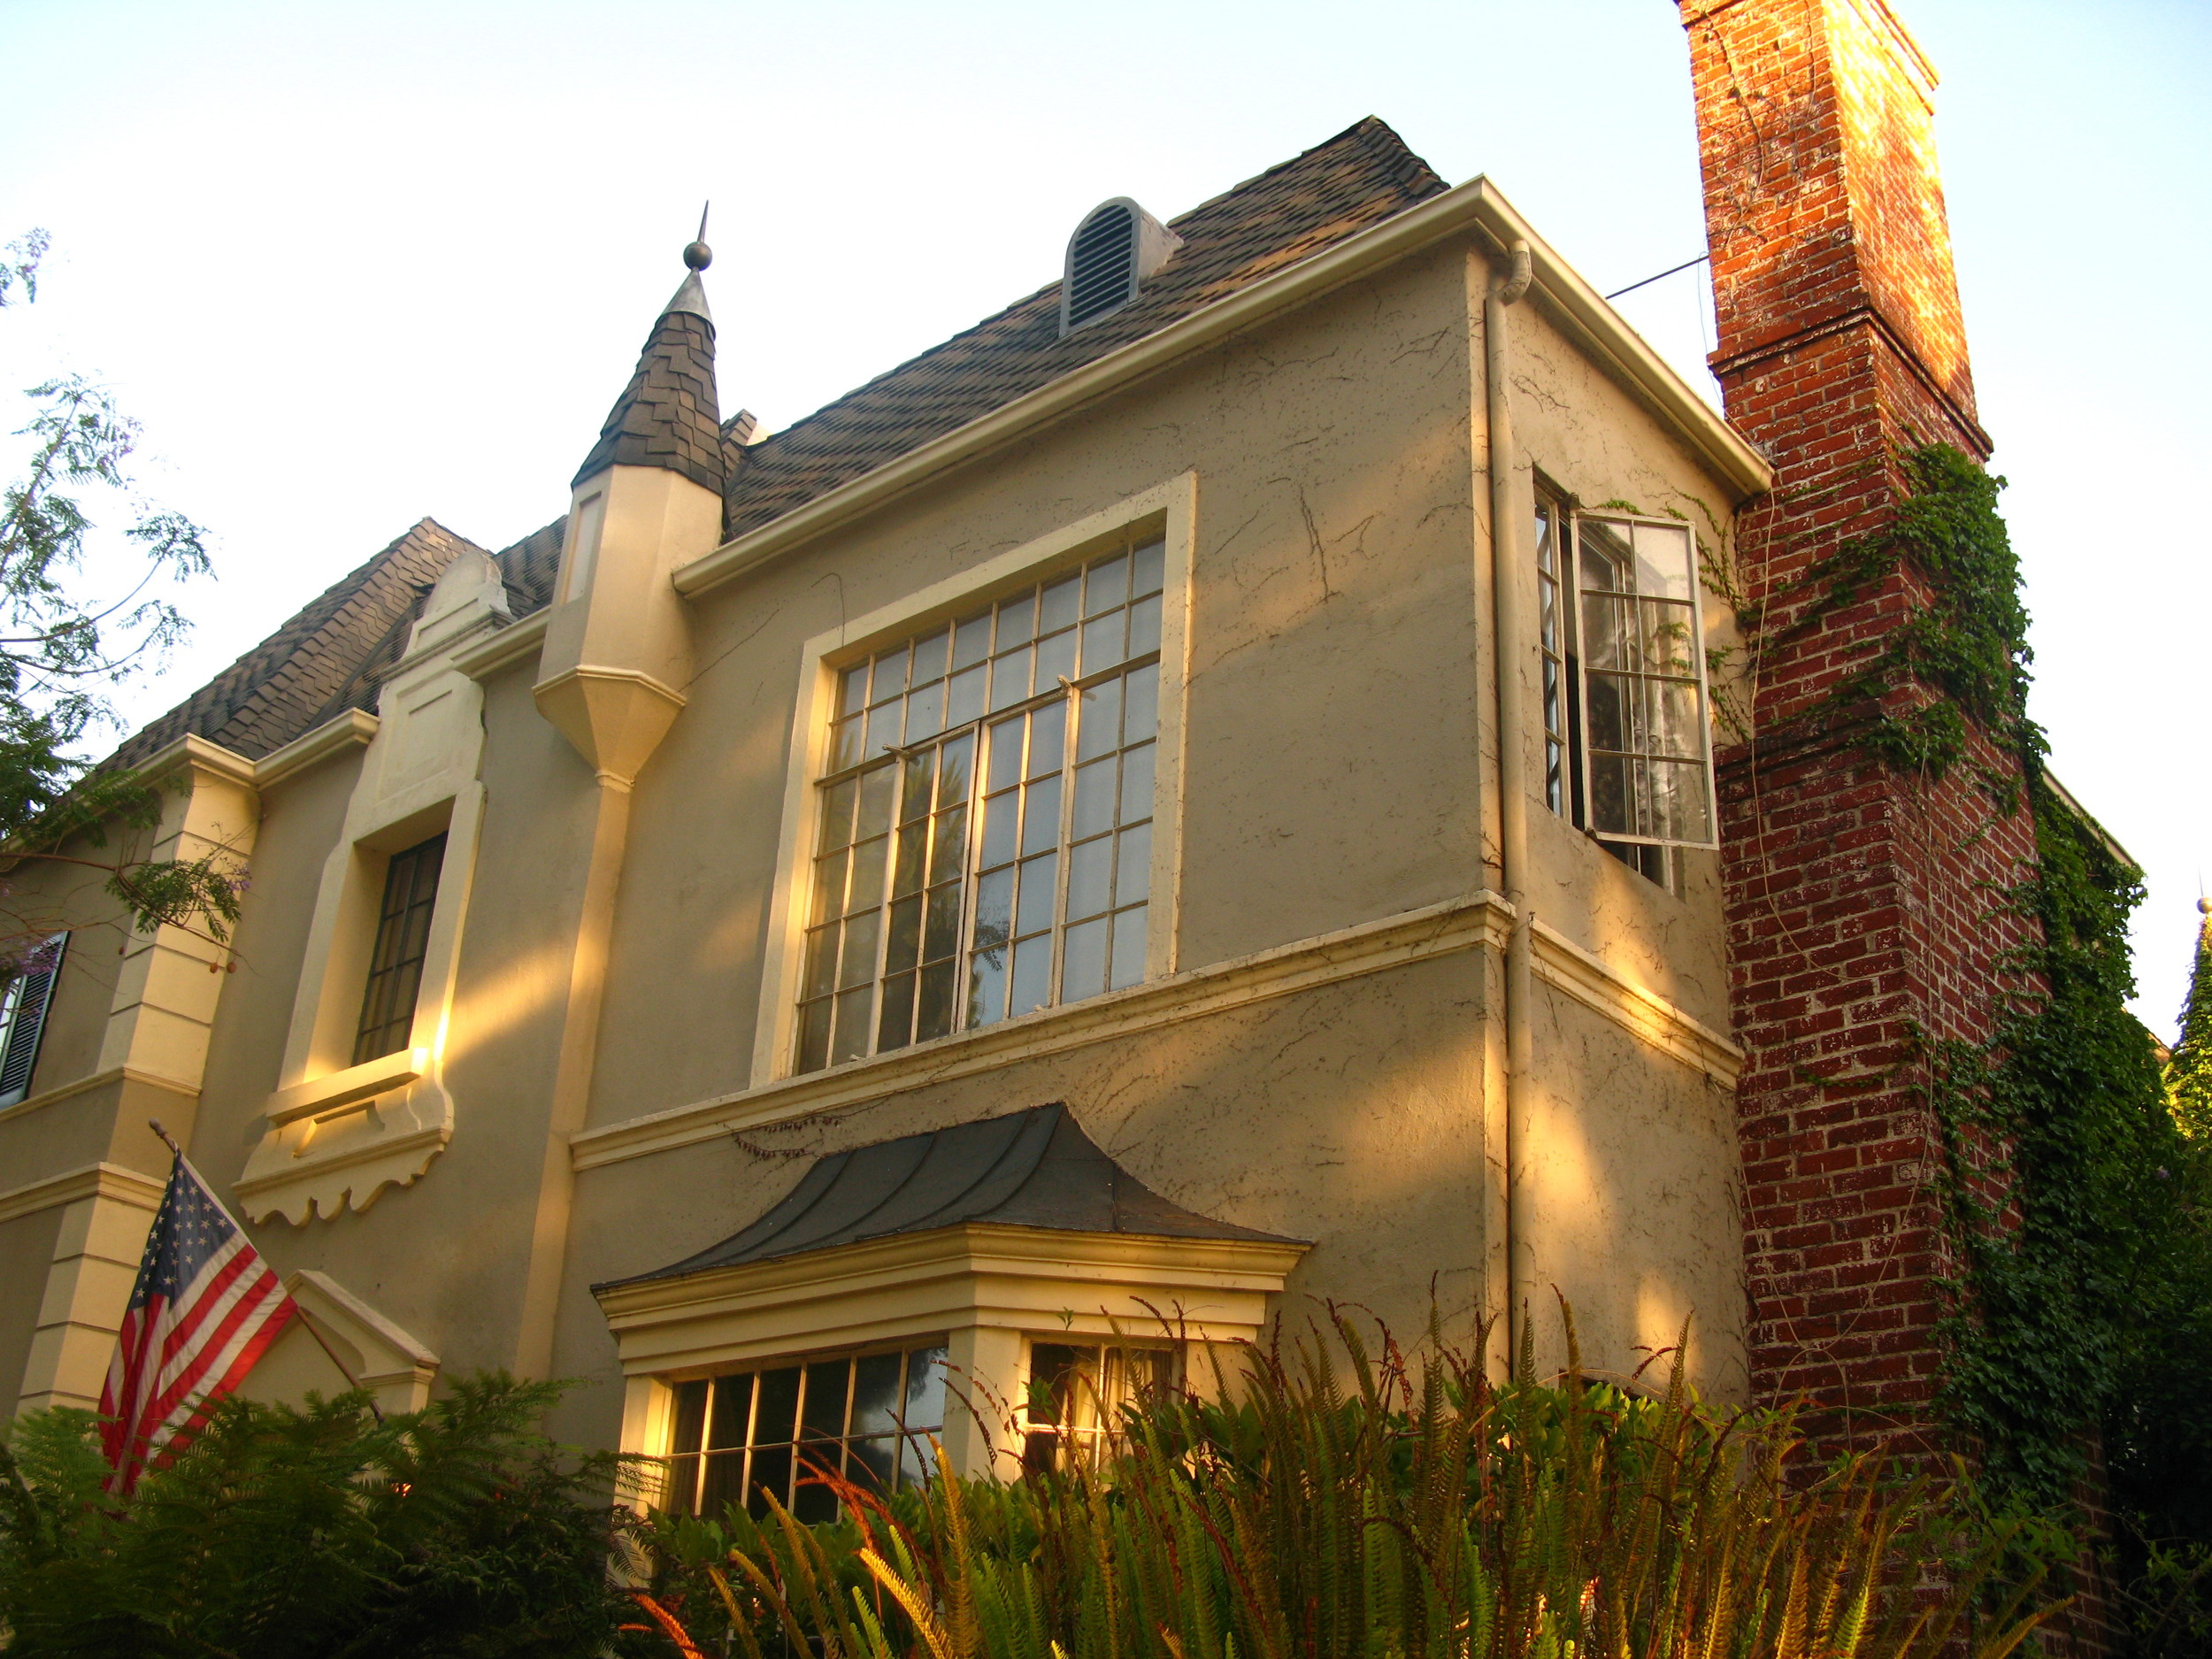 6606 Olympic Blvd, historic Chateaux Olimpique